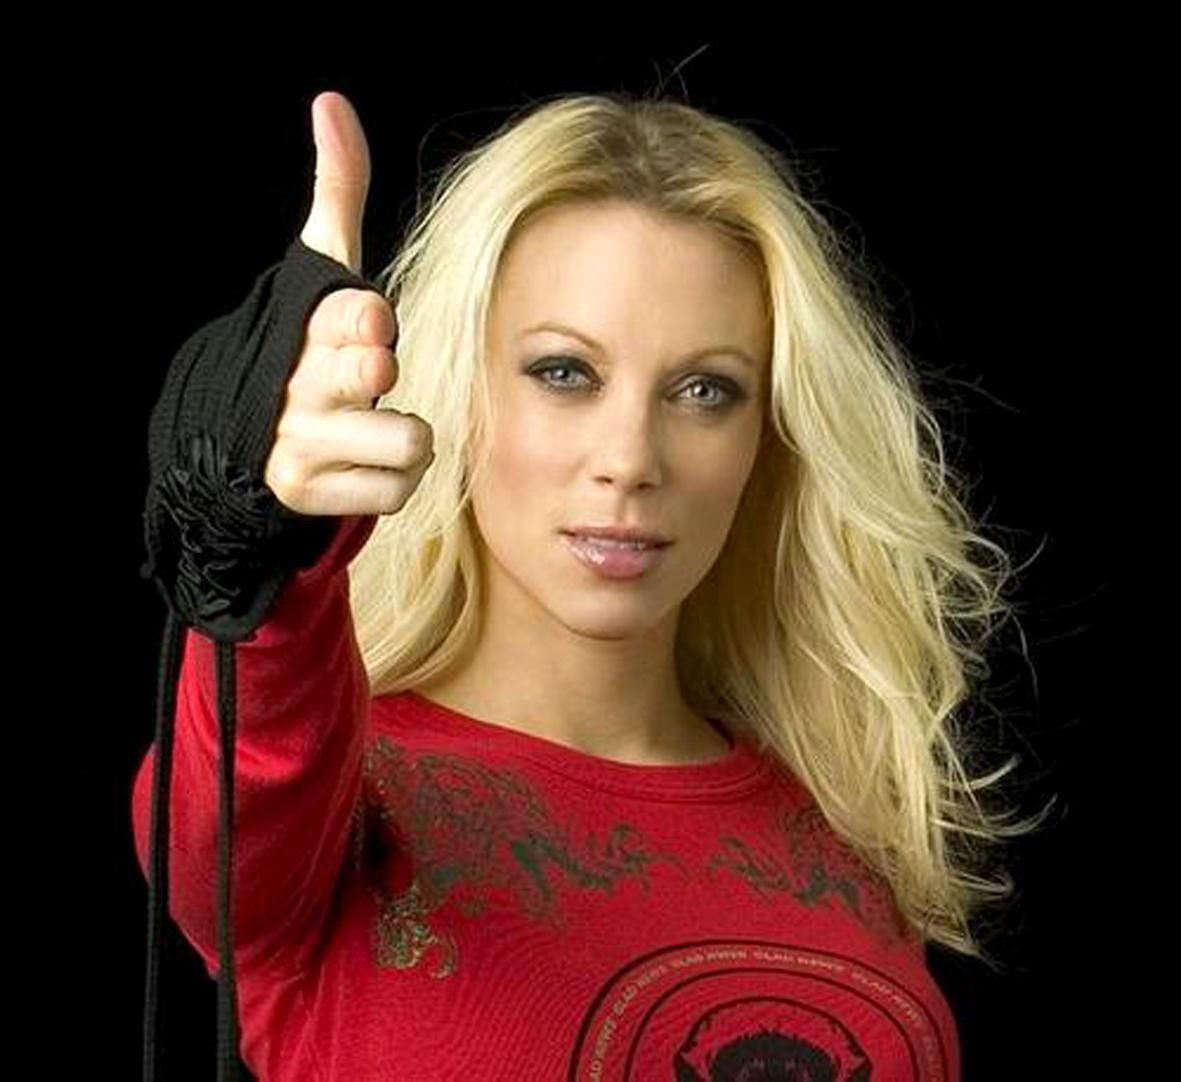 Angela Gossow Lead Singer Arch Enemy With Images Angela